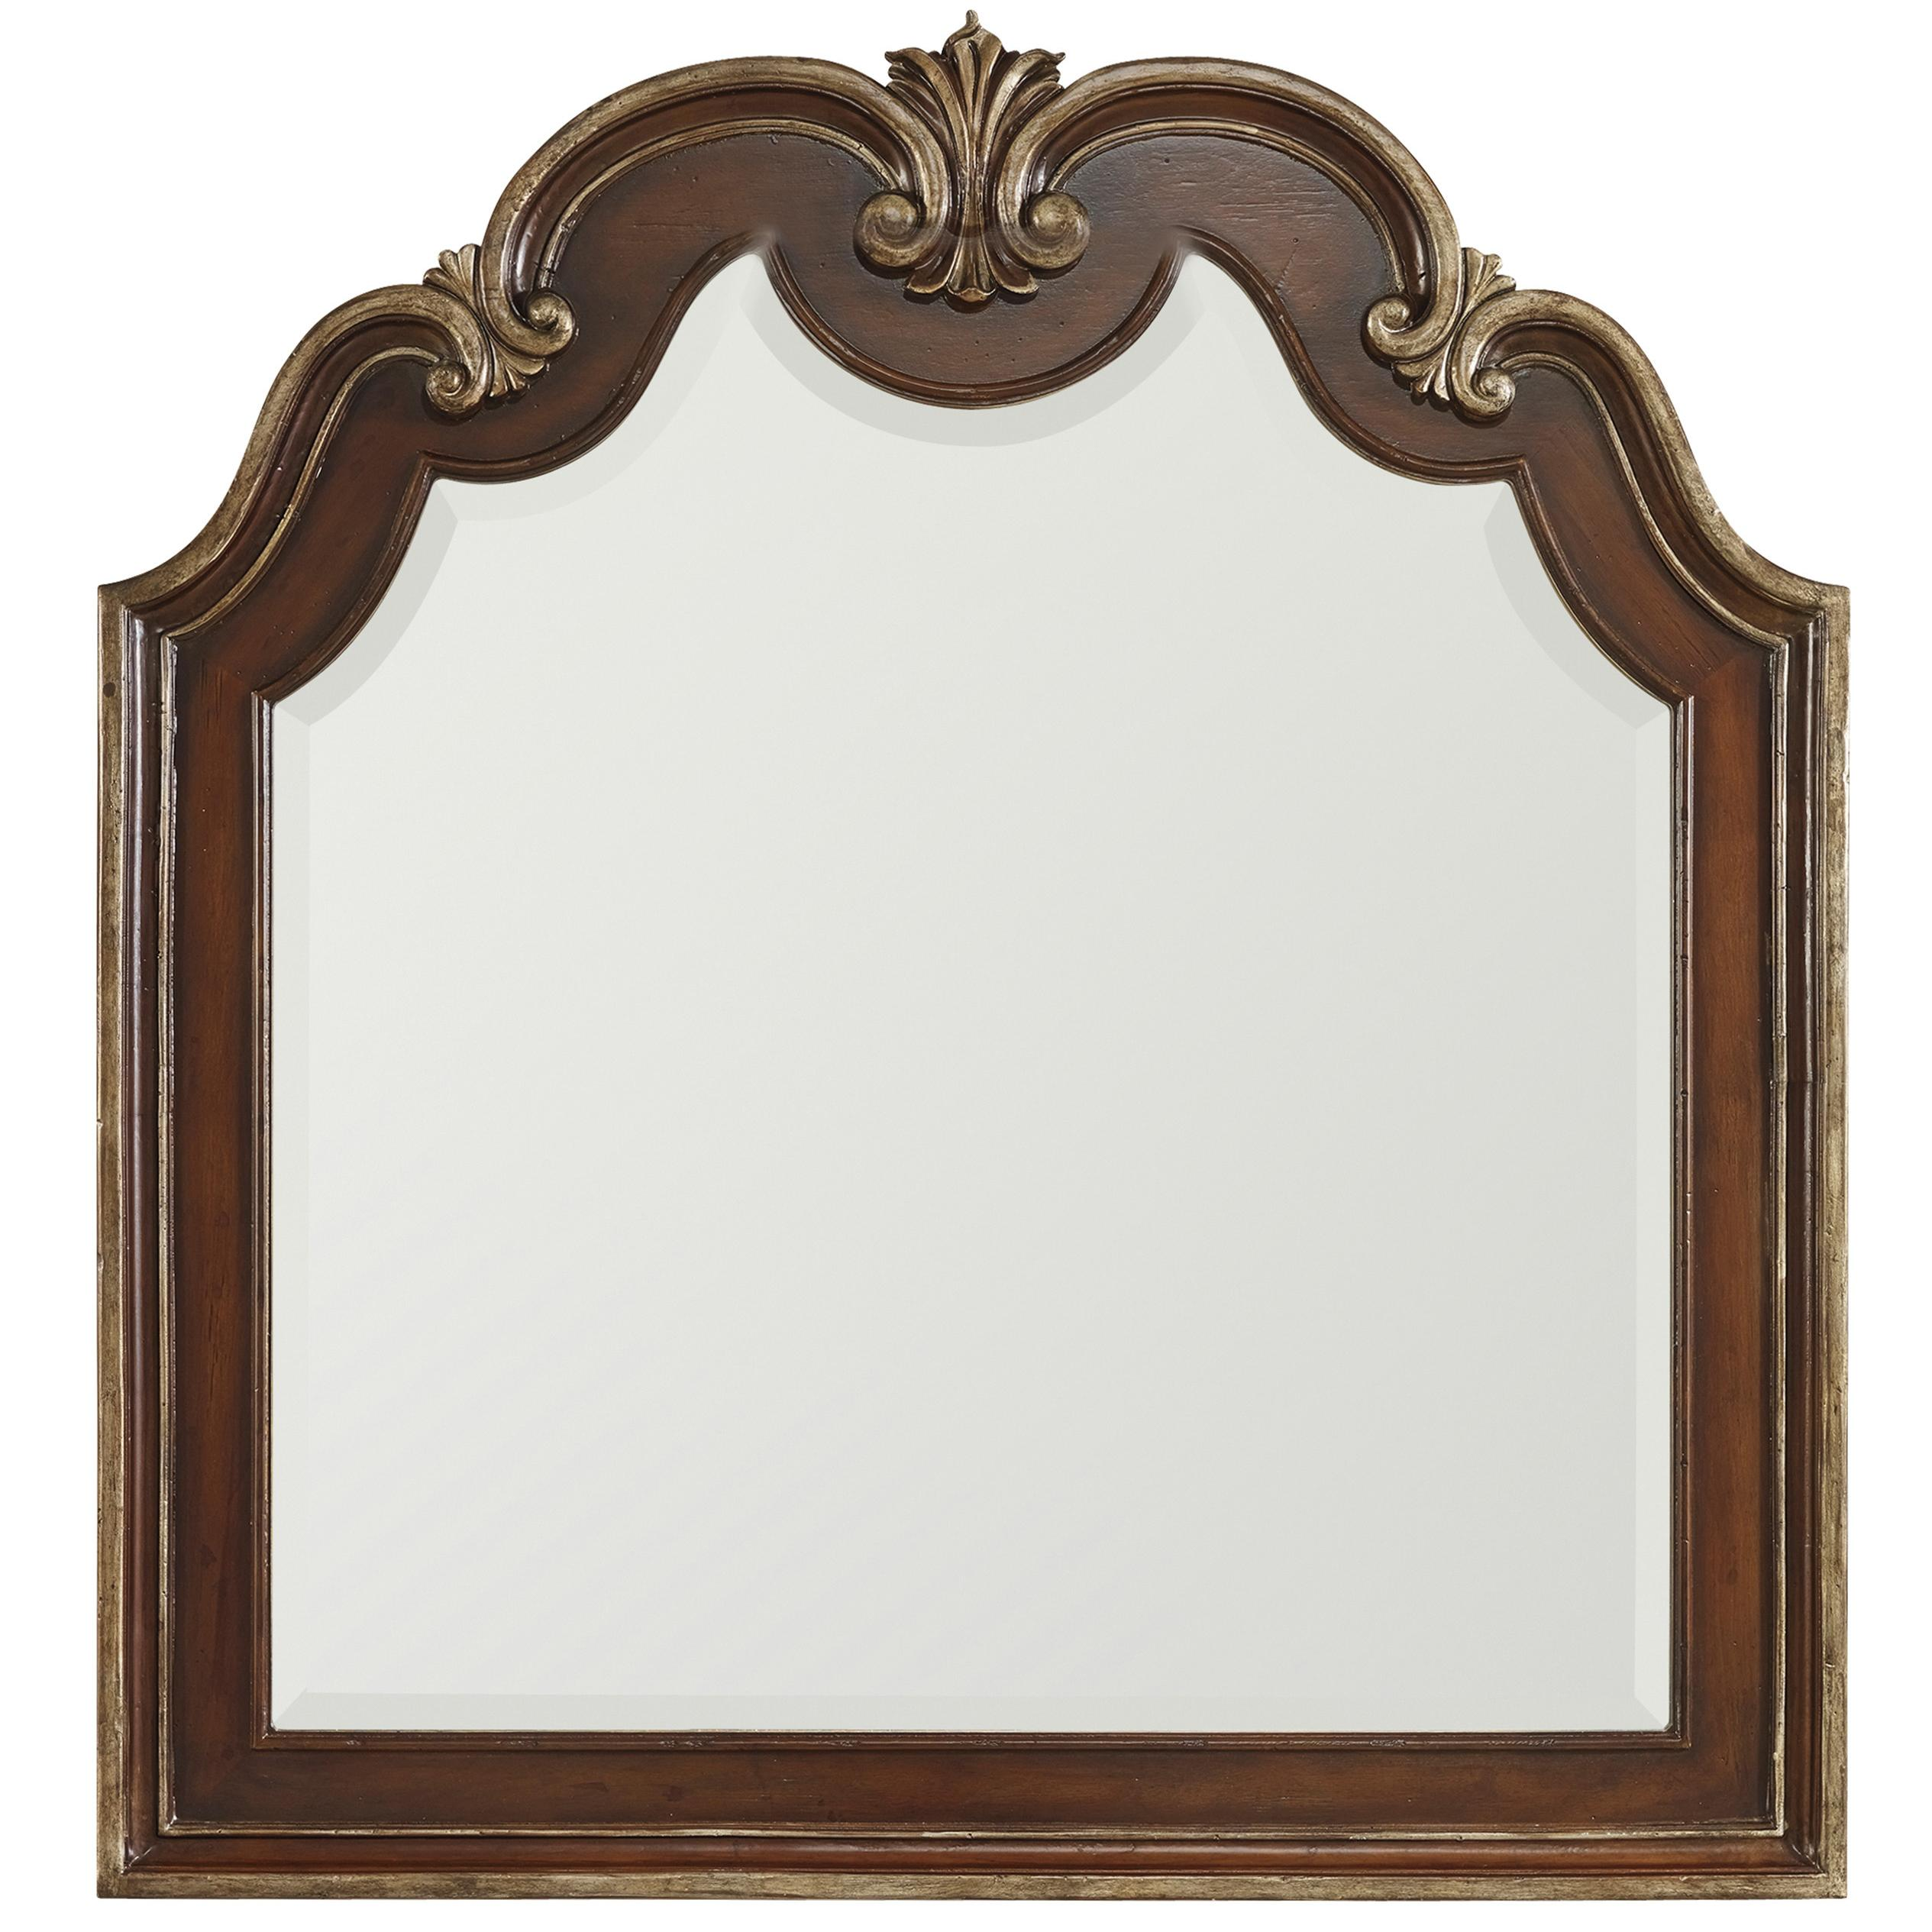 Hamilton Home Grand Palais Shaped Top Portrait Mirror - Item Number: 5272-90004